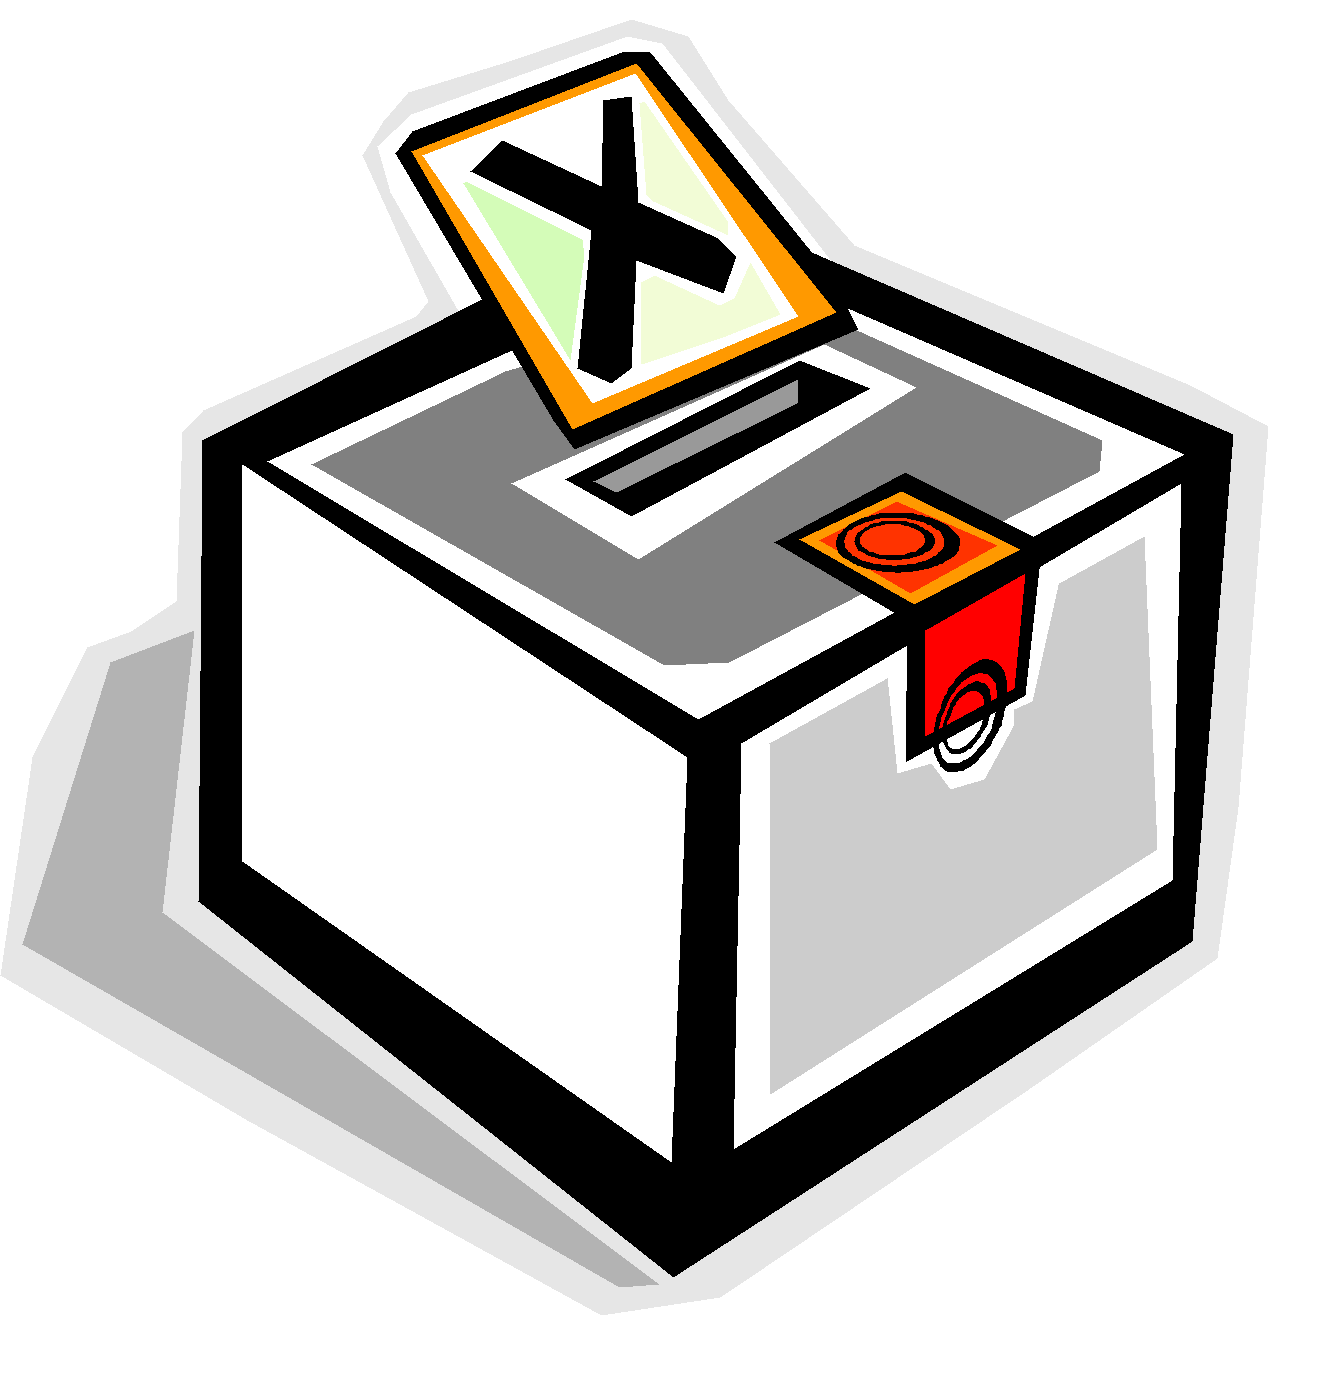 Voting clipart right responsibility. Voters and voter behavior